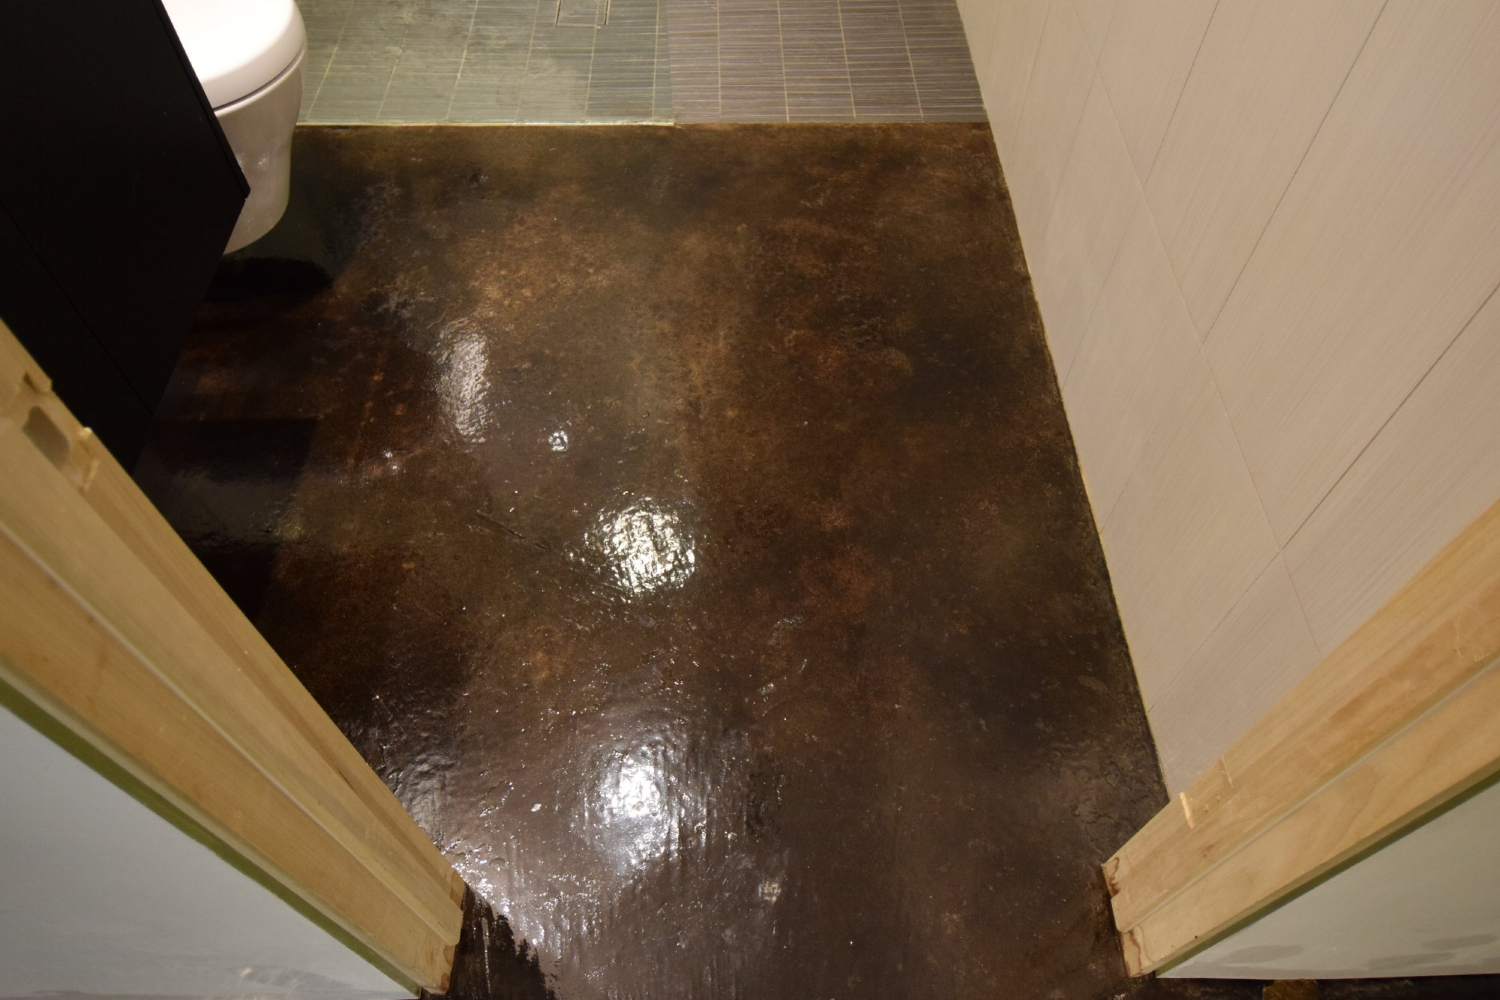 Black Acid-Stained Basement Bathroom Concrete Floor After Removing Paint Drip Blemishes By Faux Finishing